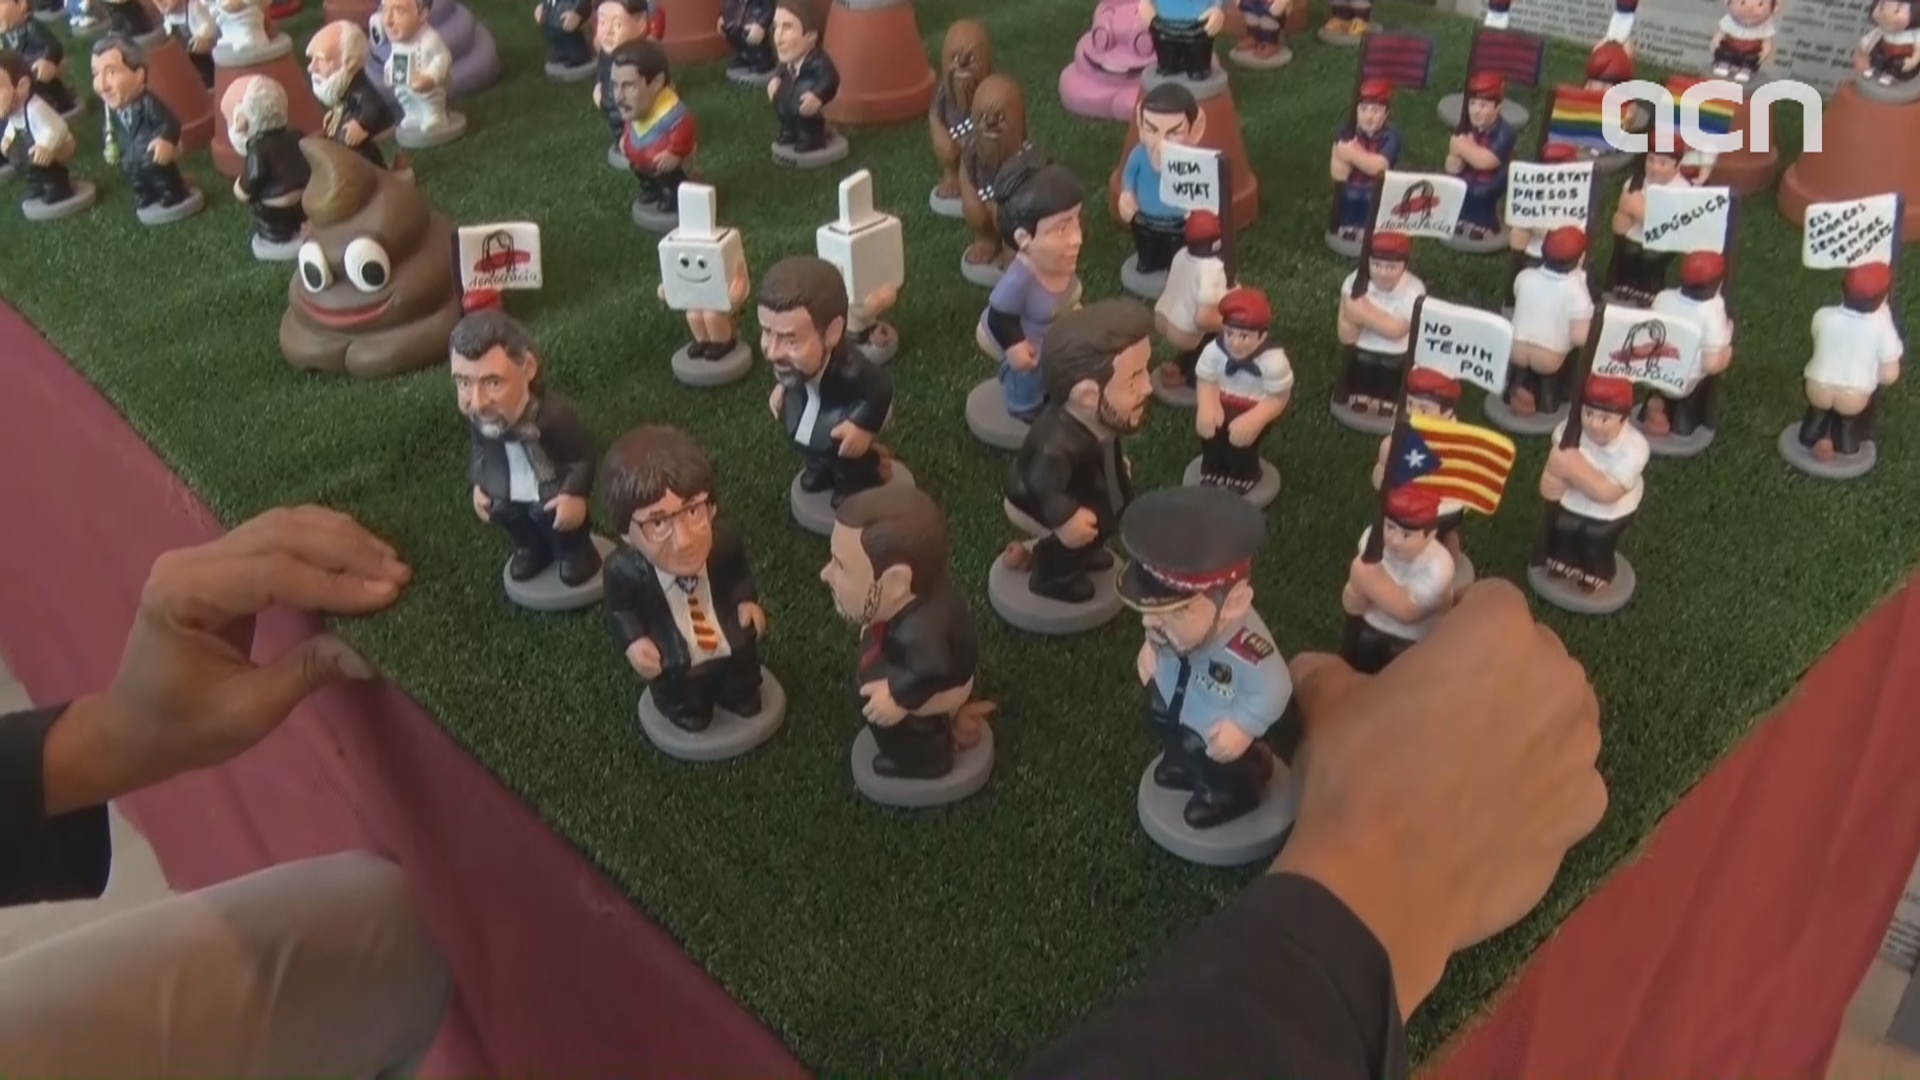 Christmas 'caganer' figurines depict independence process